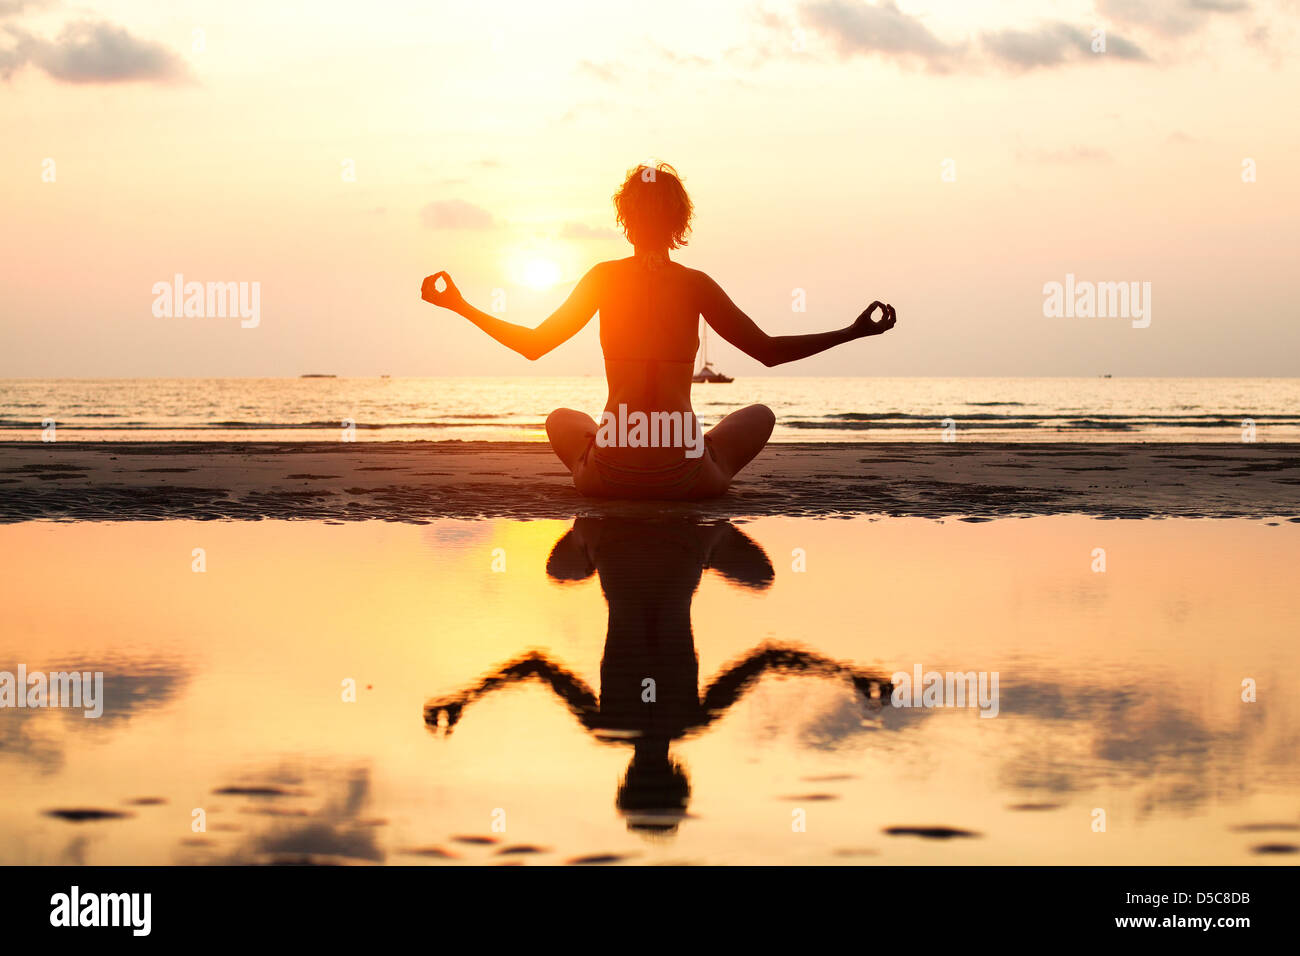 Yoga woman sitting in lotus pose on the beach during sunset, with reflection in water, in bright colors. - Stock Image